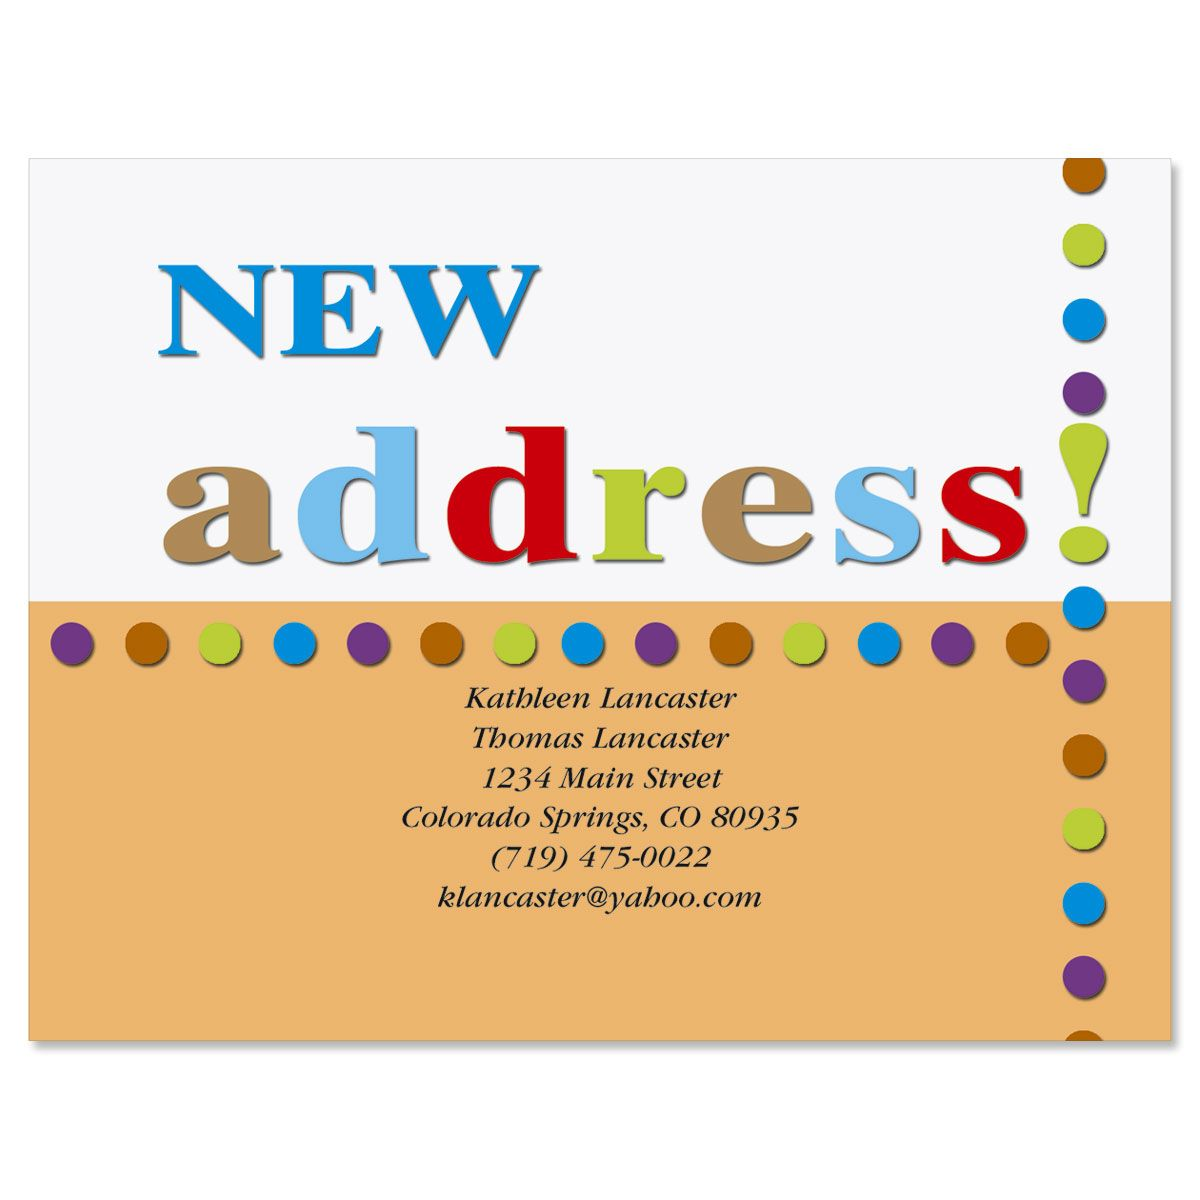 New Address! New Address Postcards